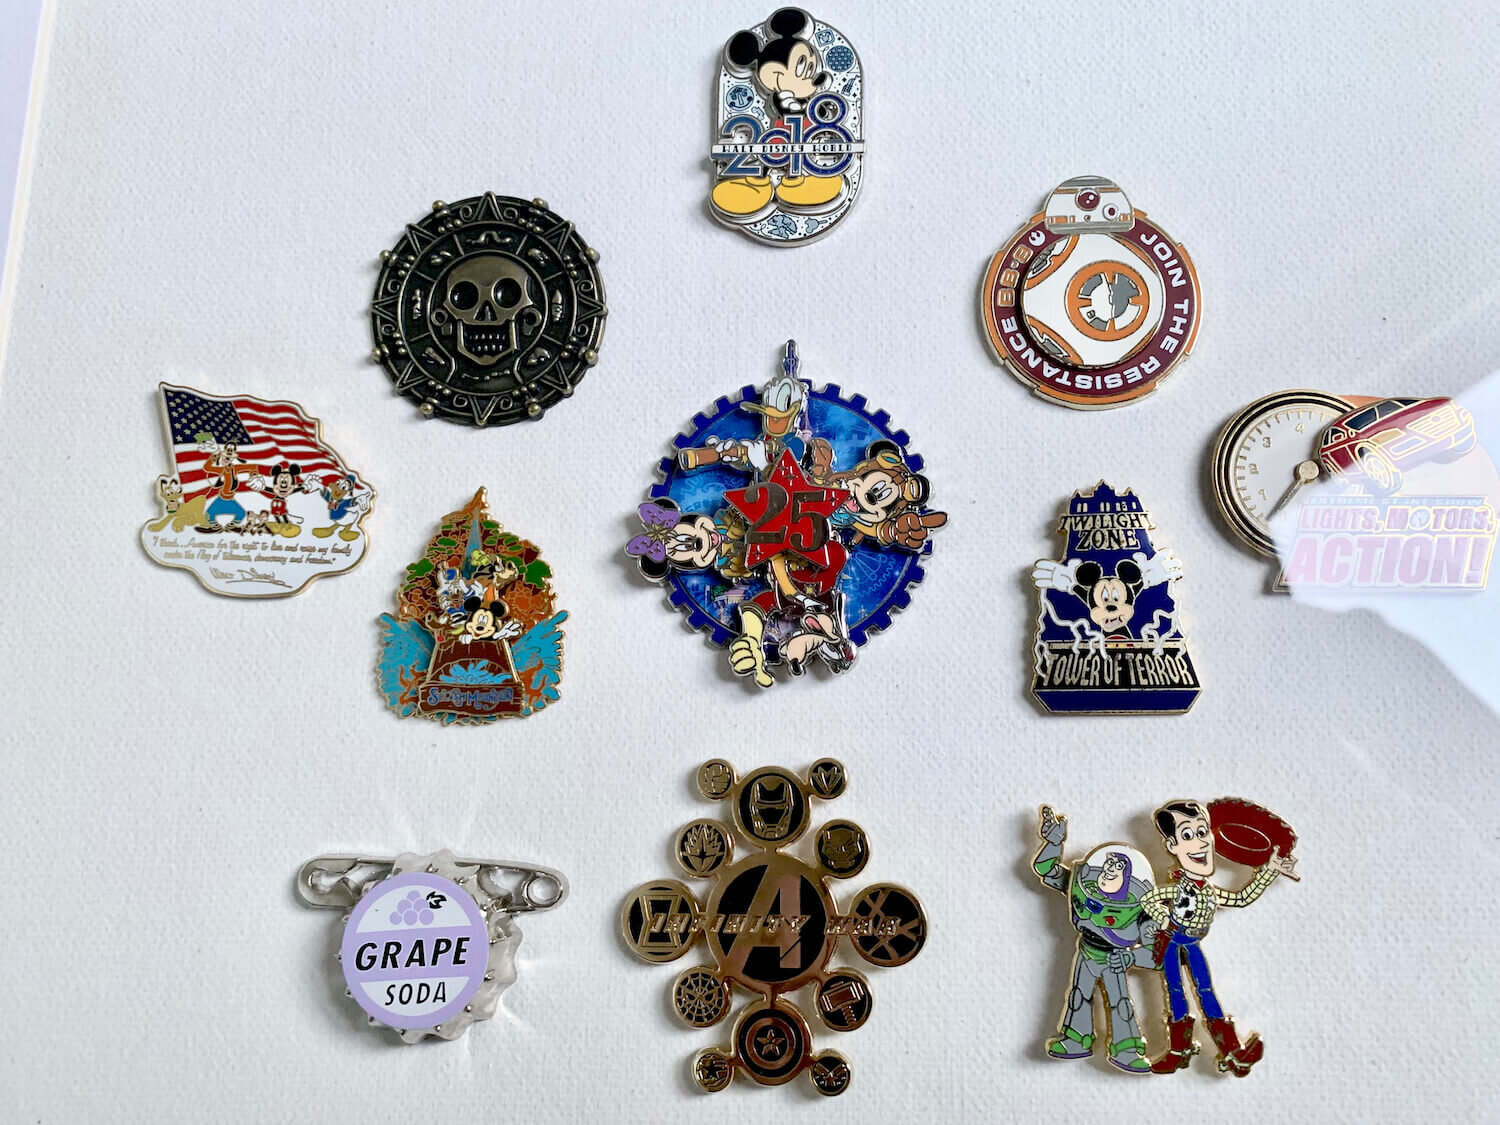 Disney Pin Badges - Displayed in Frame in A Symmetrical Pattern